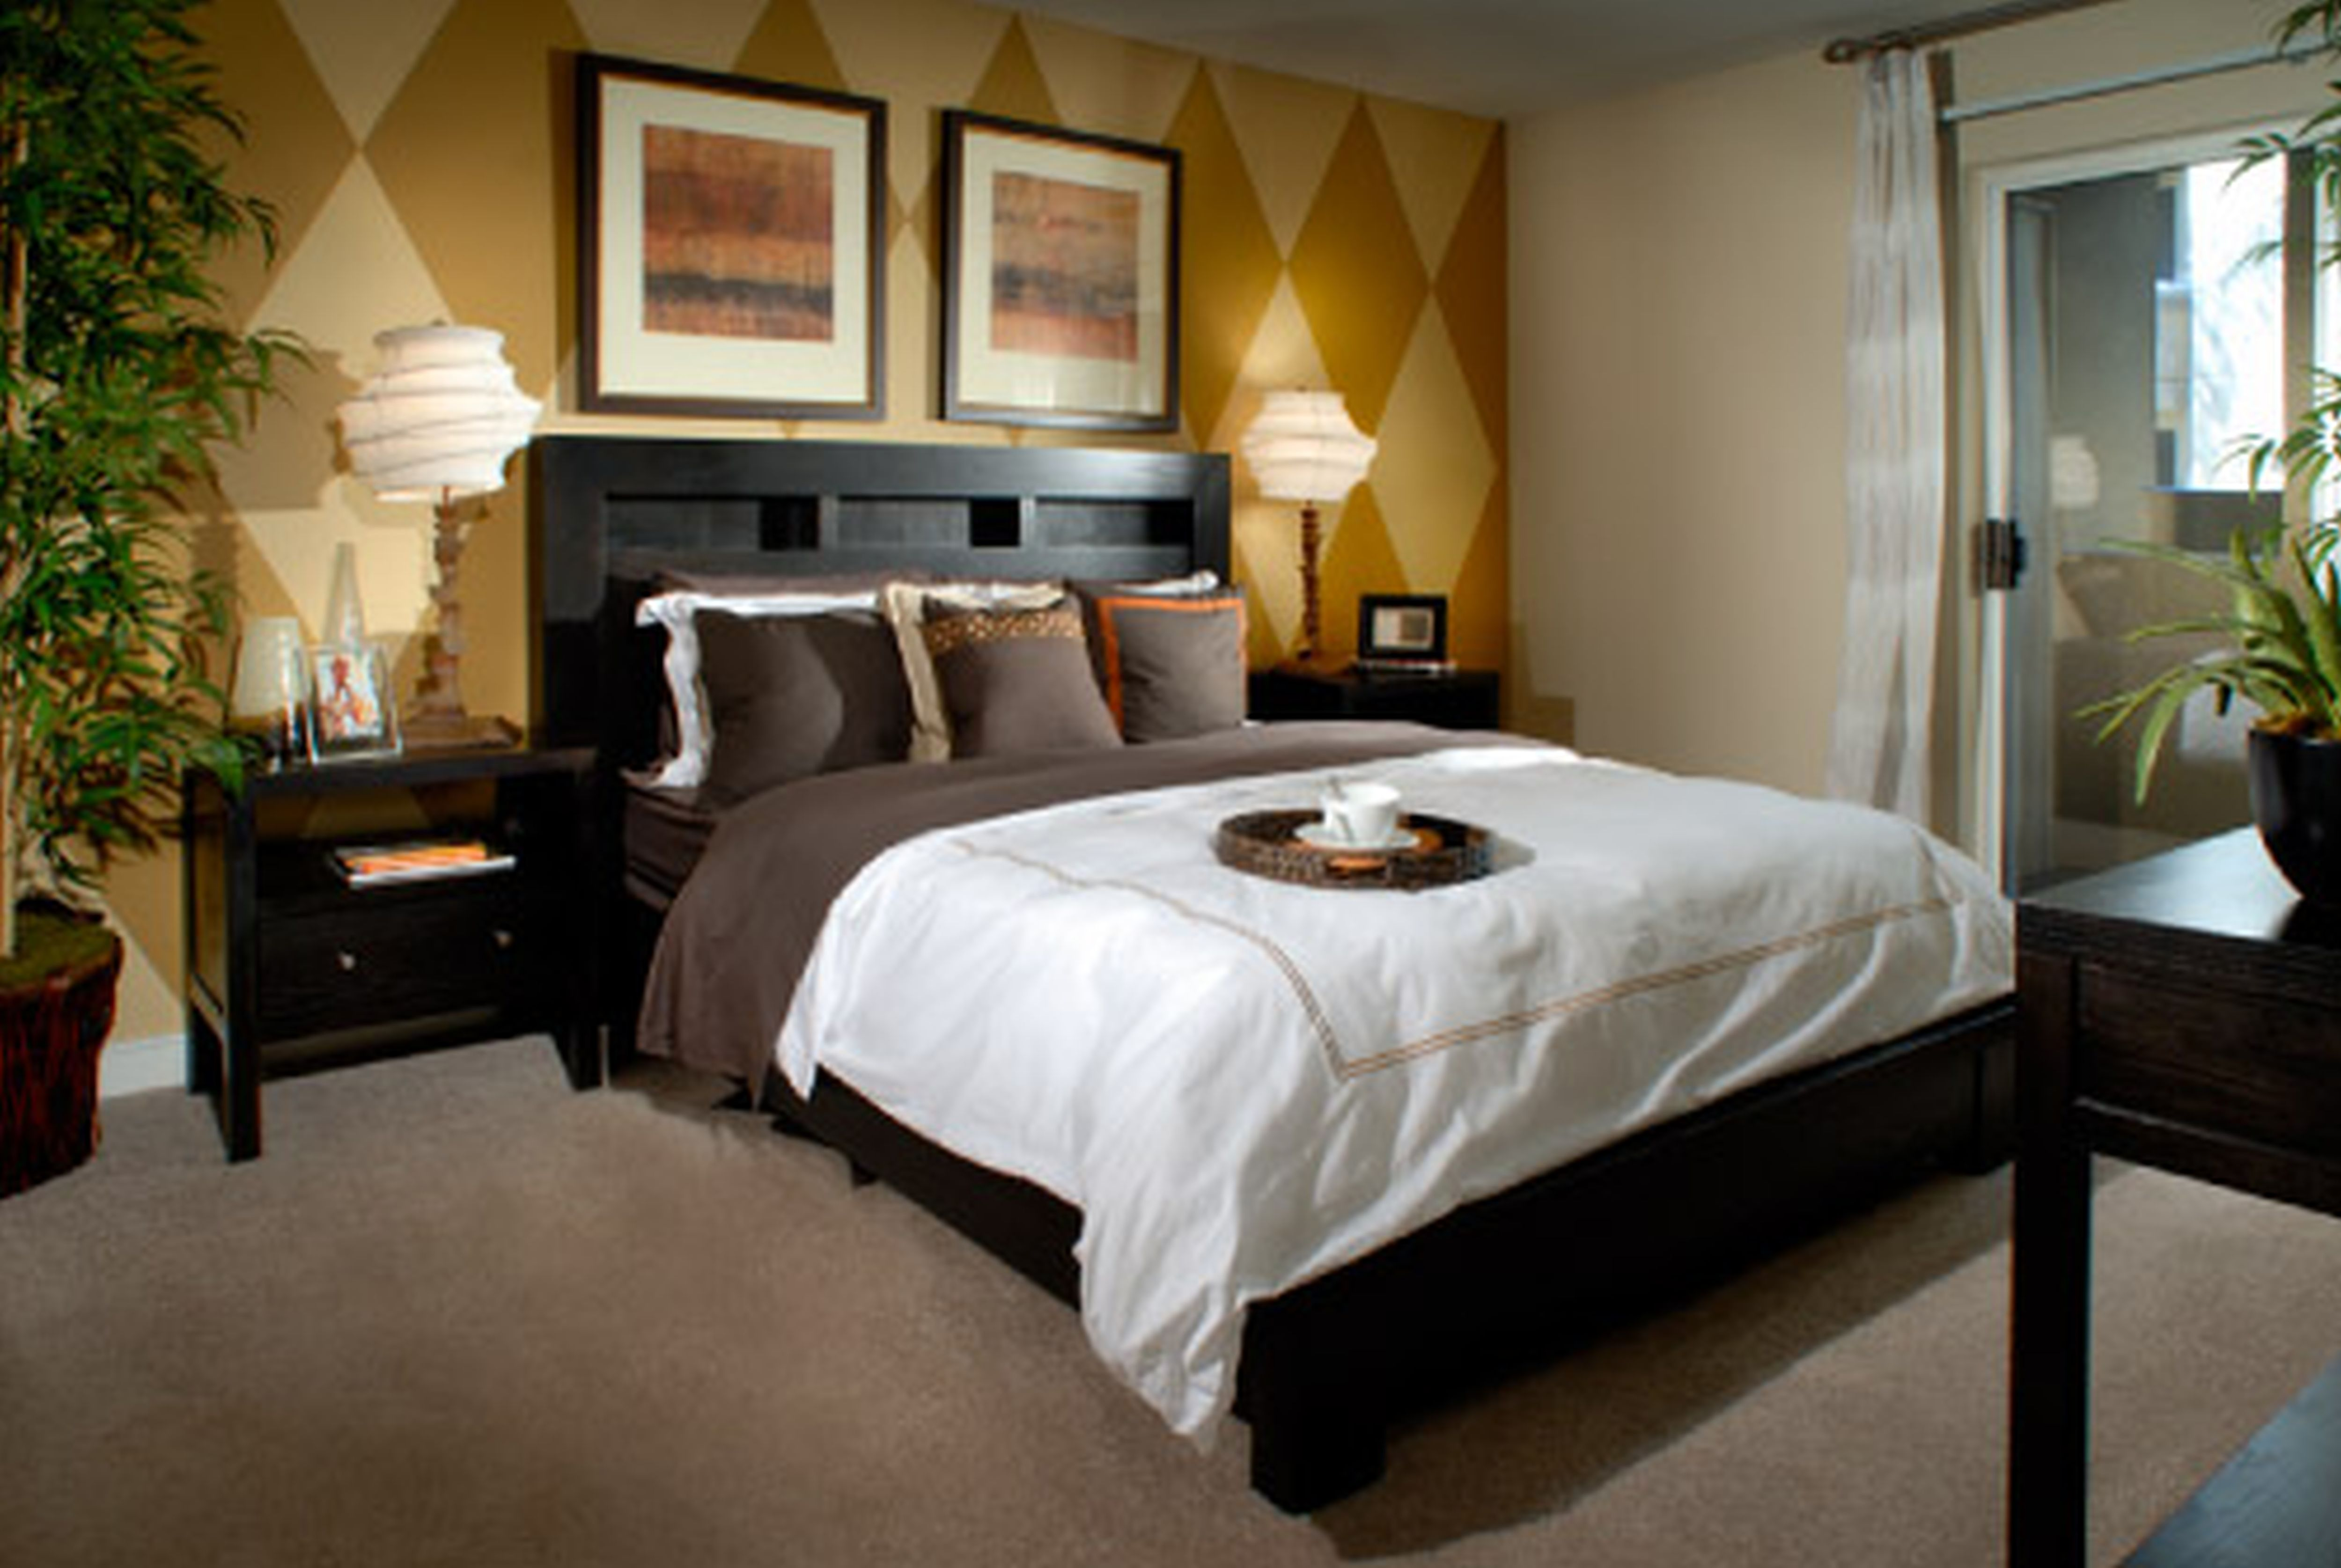 Small Apartment Bedroom With Luring Background and Lighting Plus Bed